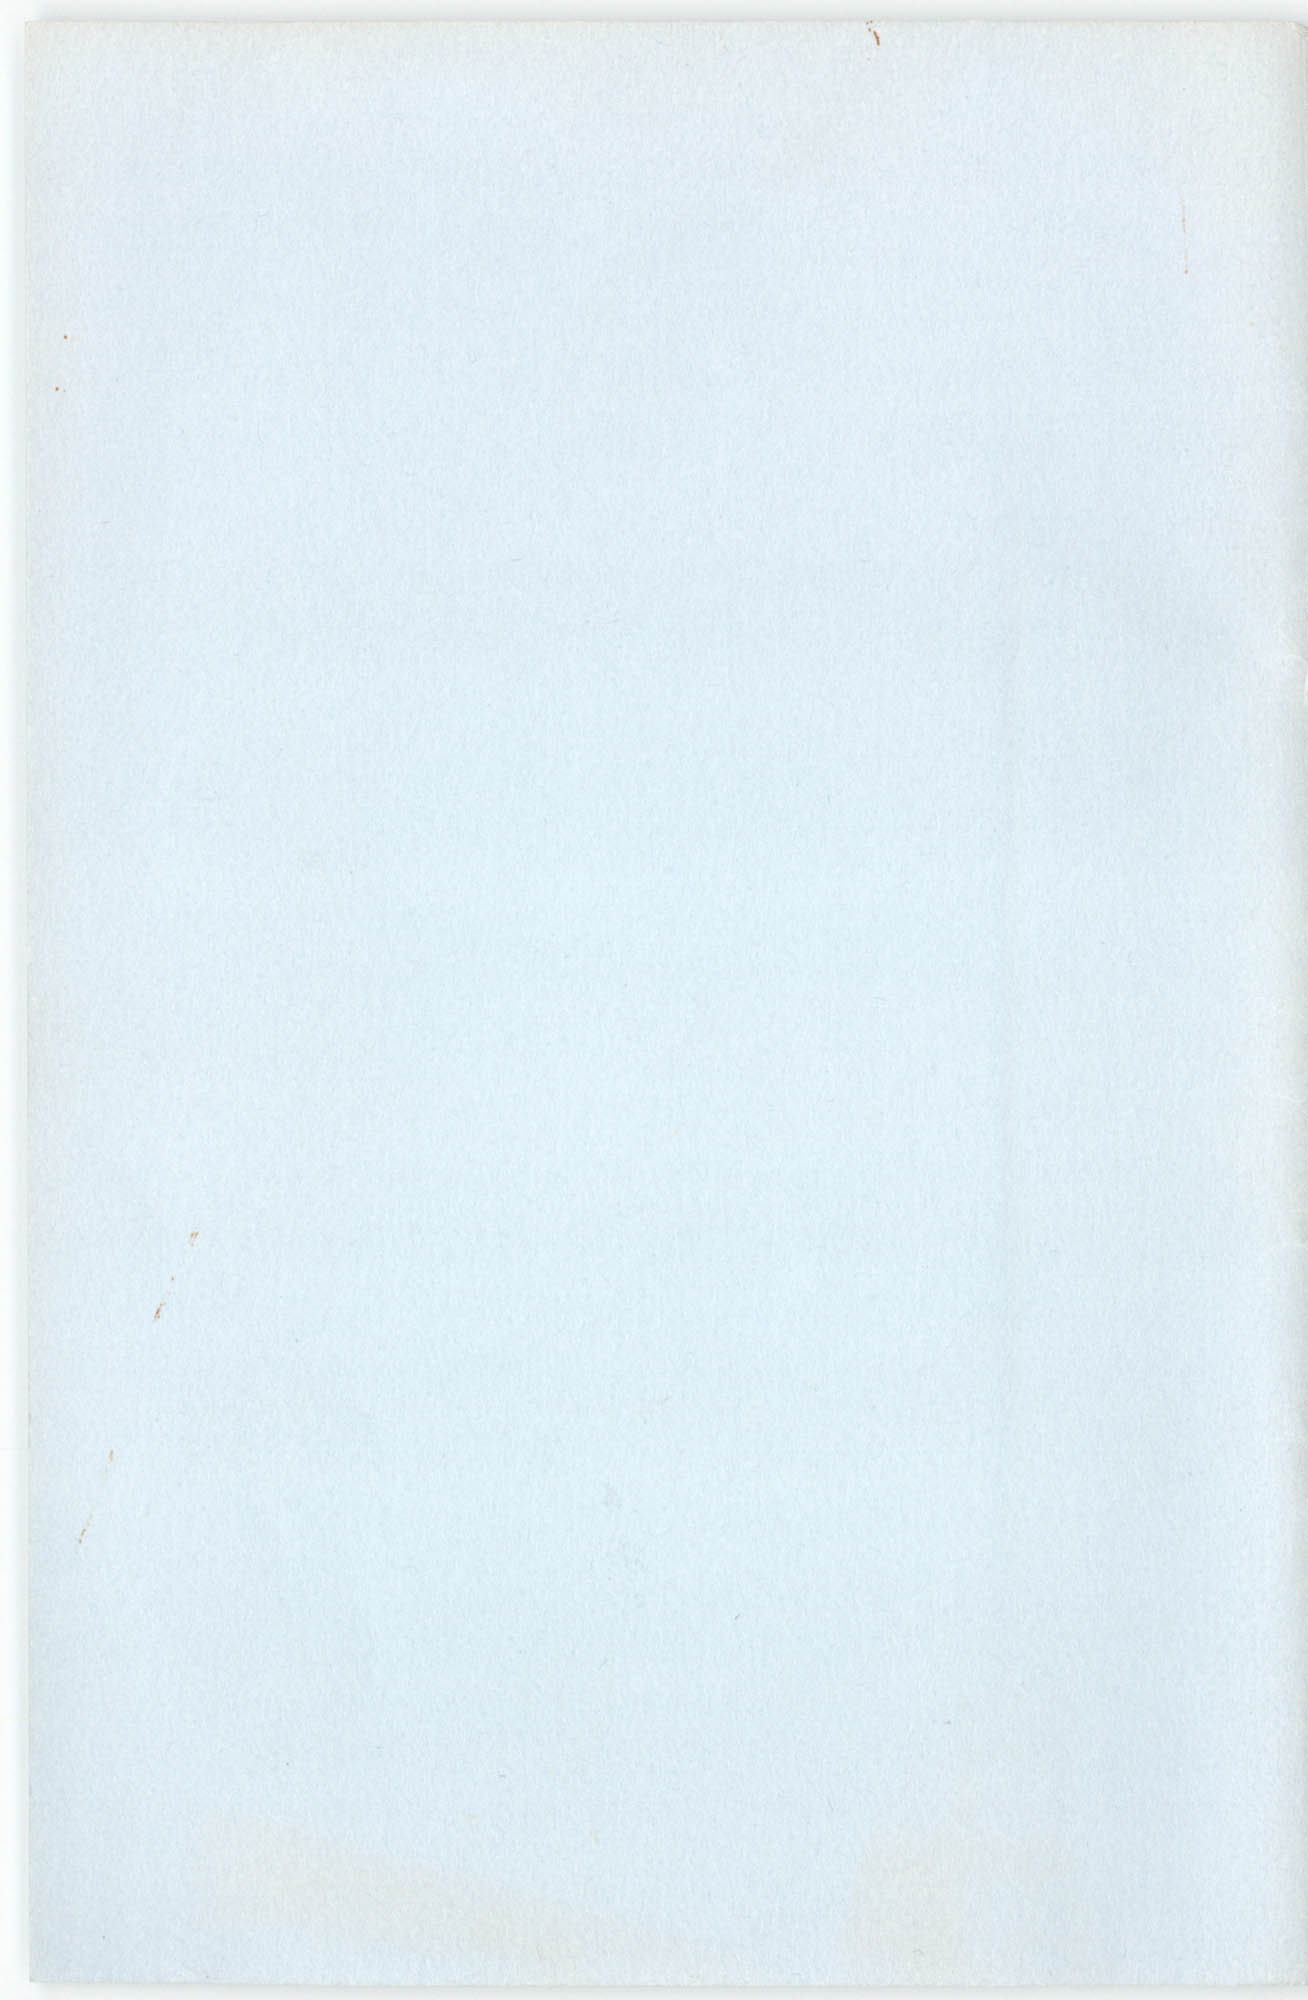 State of South Carolina Directory of Registered Social Workers, 1977, Back Cover